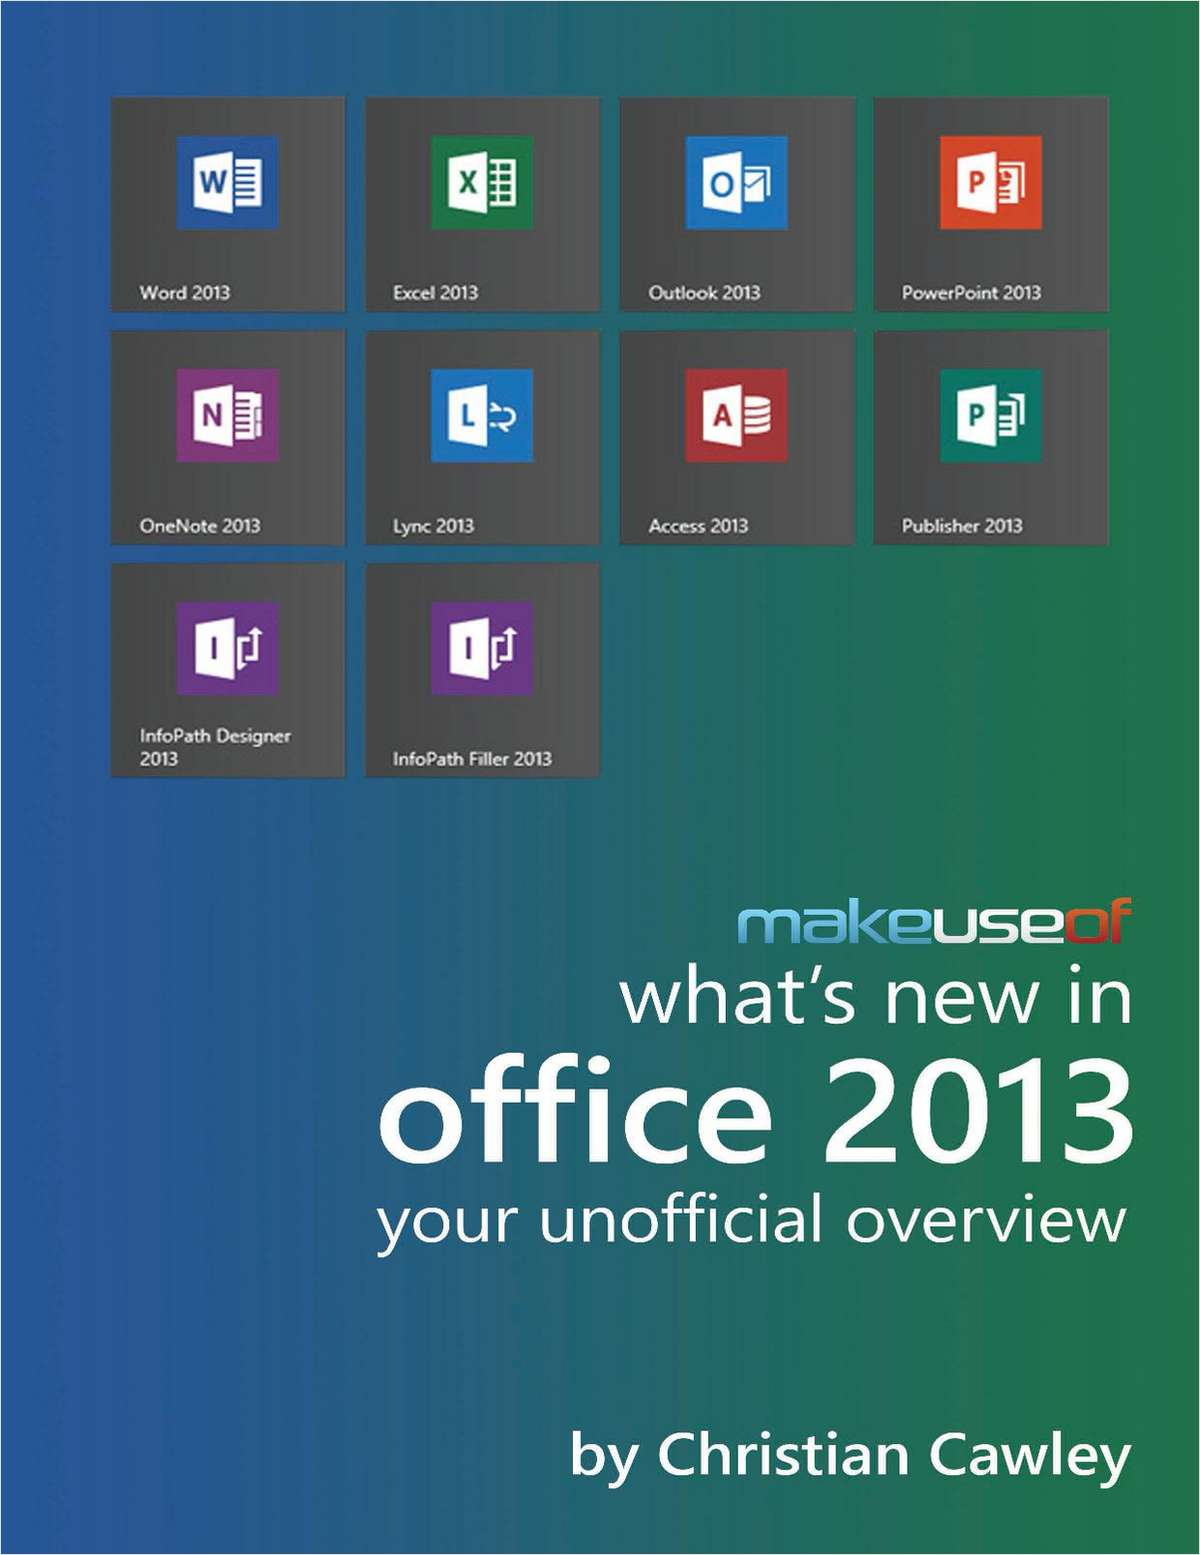 What's New in Office 2013 - Your Unofficial Overview